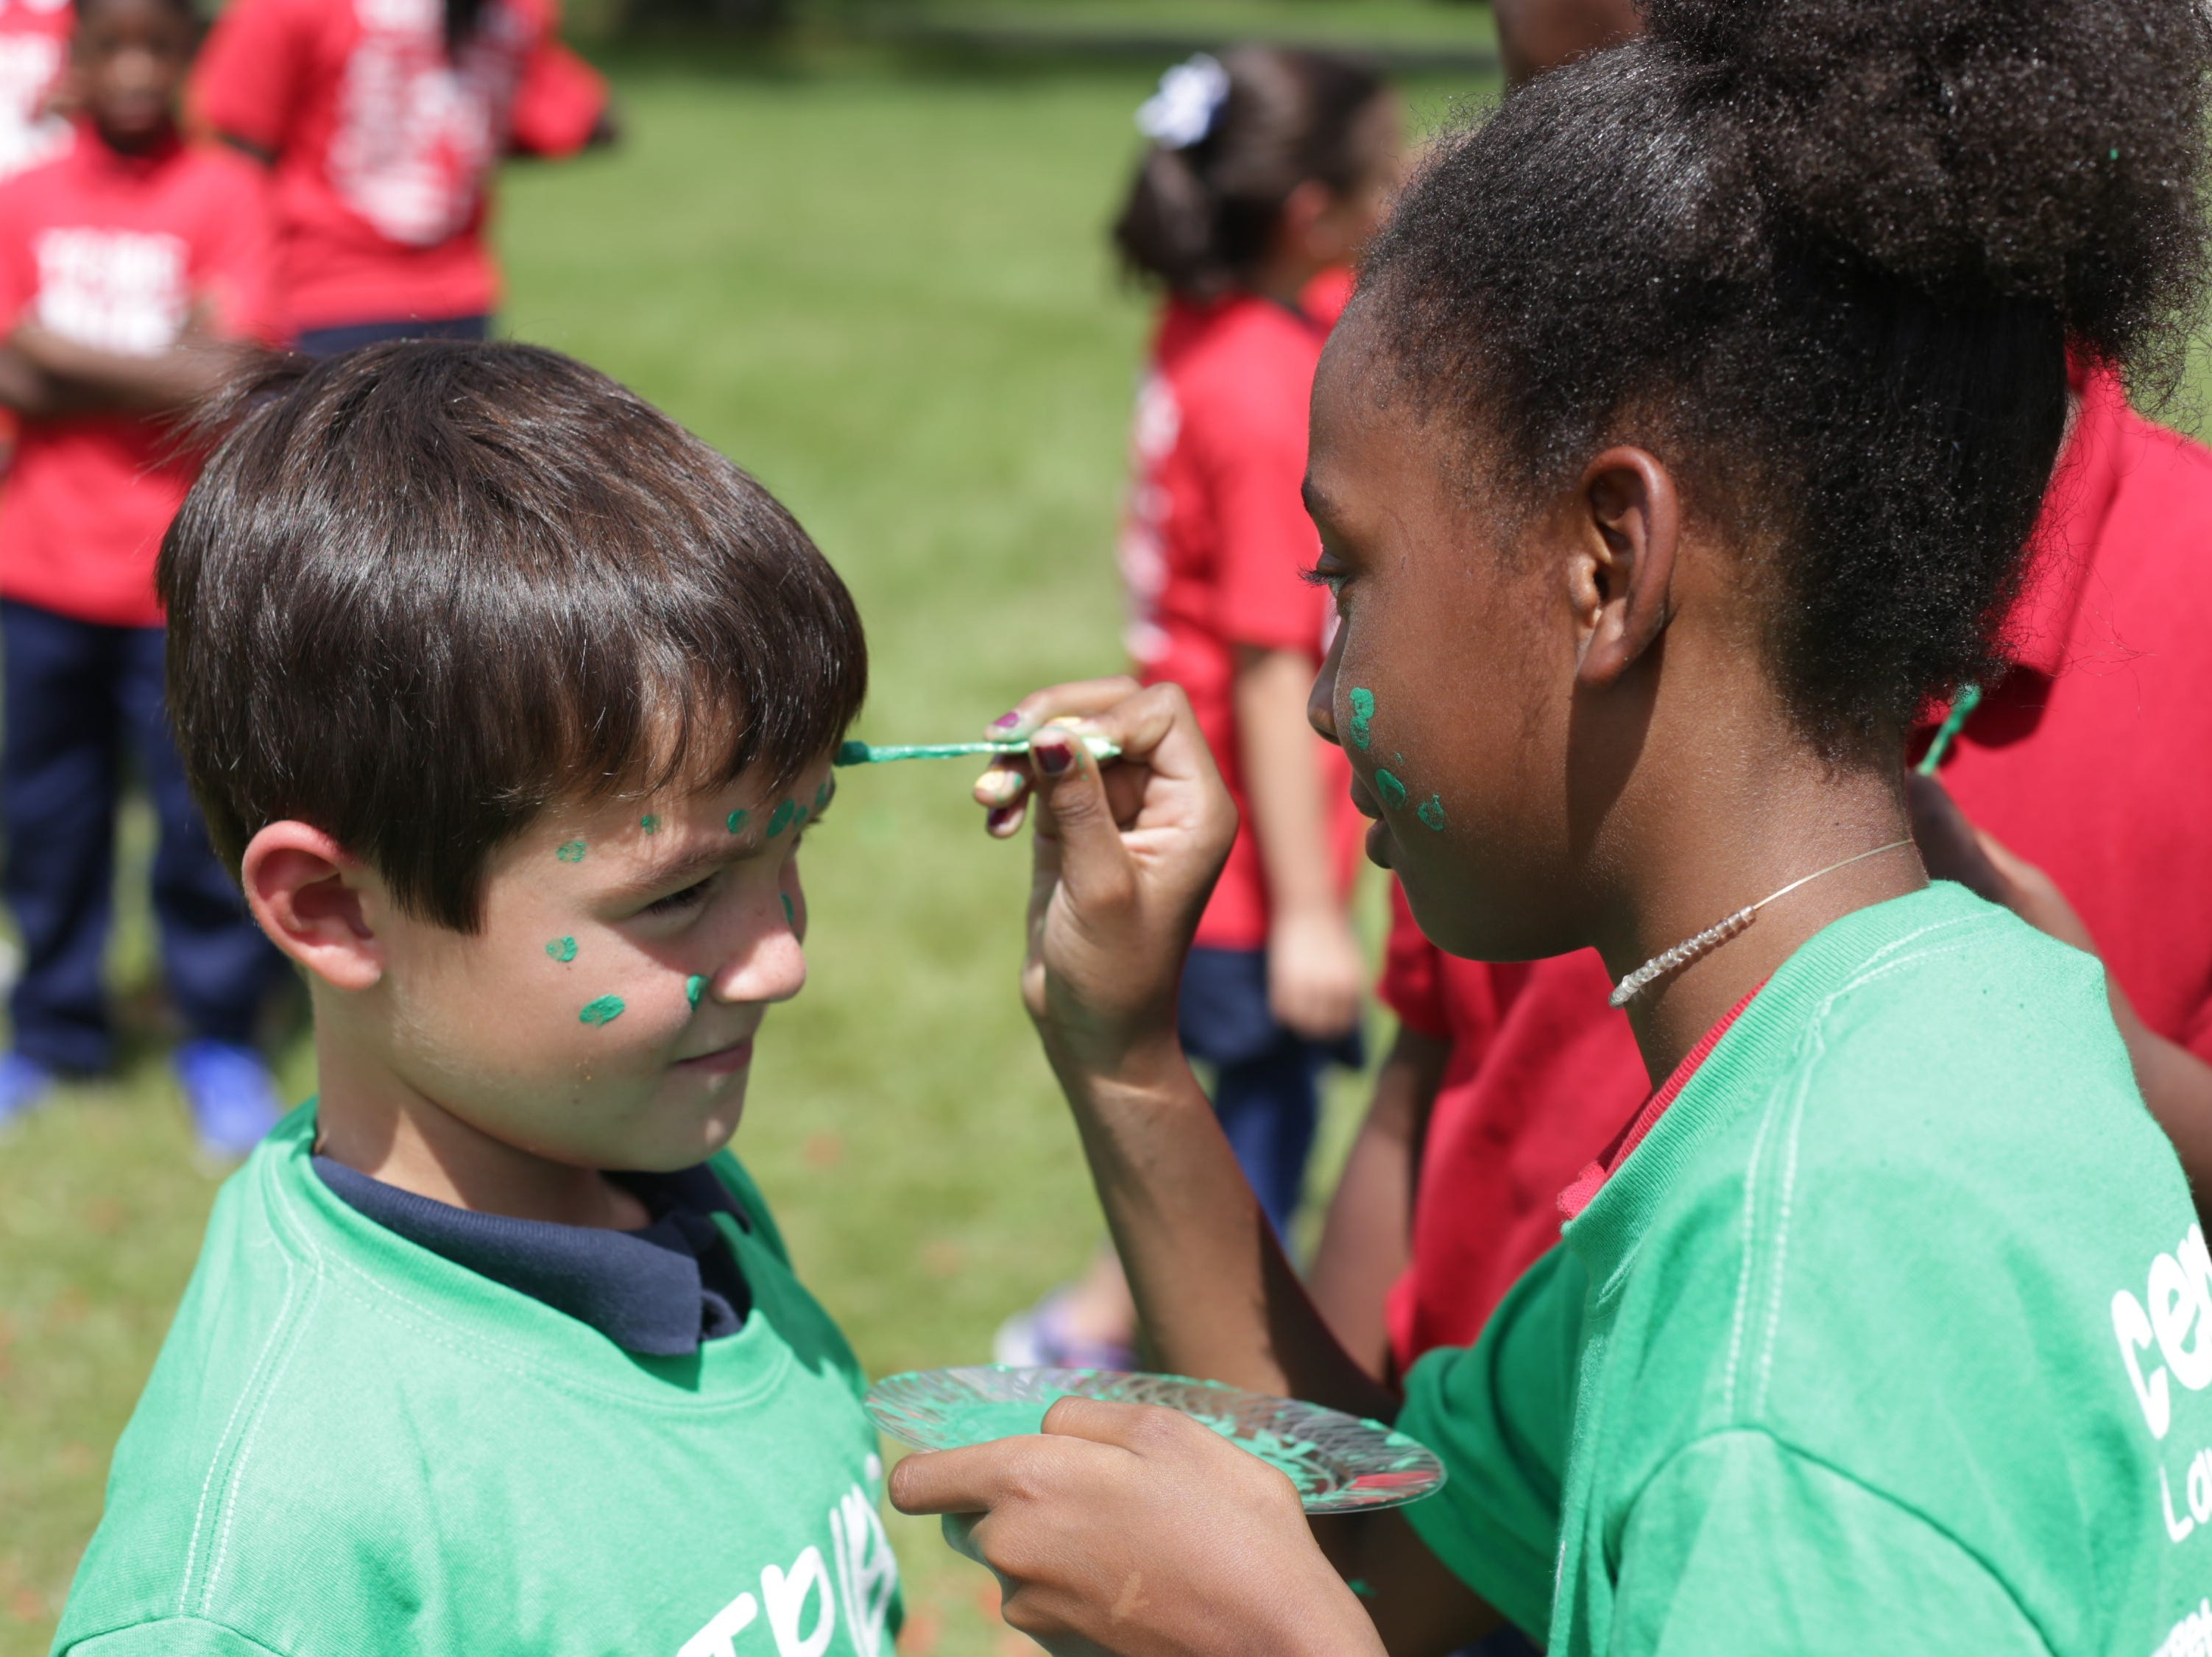 Third-graders Brody Perkins and Mi'Kaylah Guynn sport green face paint representing their tribe at Cherokee Elementary. The school randomly assigned students to tribes at a kick-off Thursday. The tribes also include teachers and staff and are meant to foster community within the school.